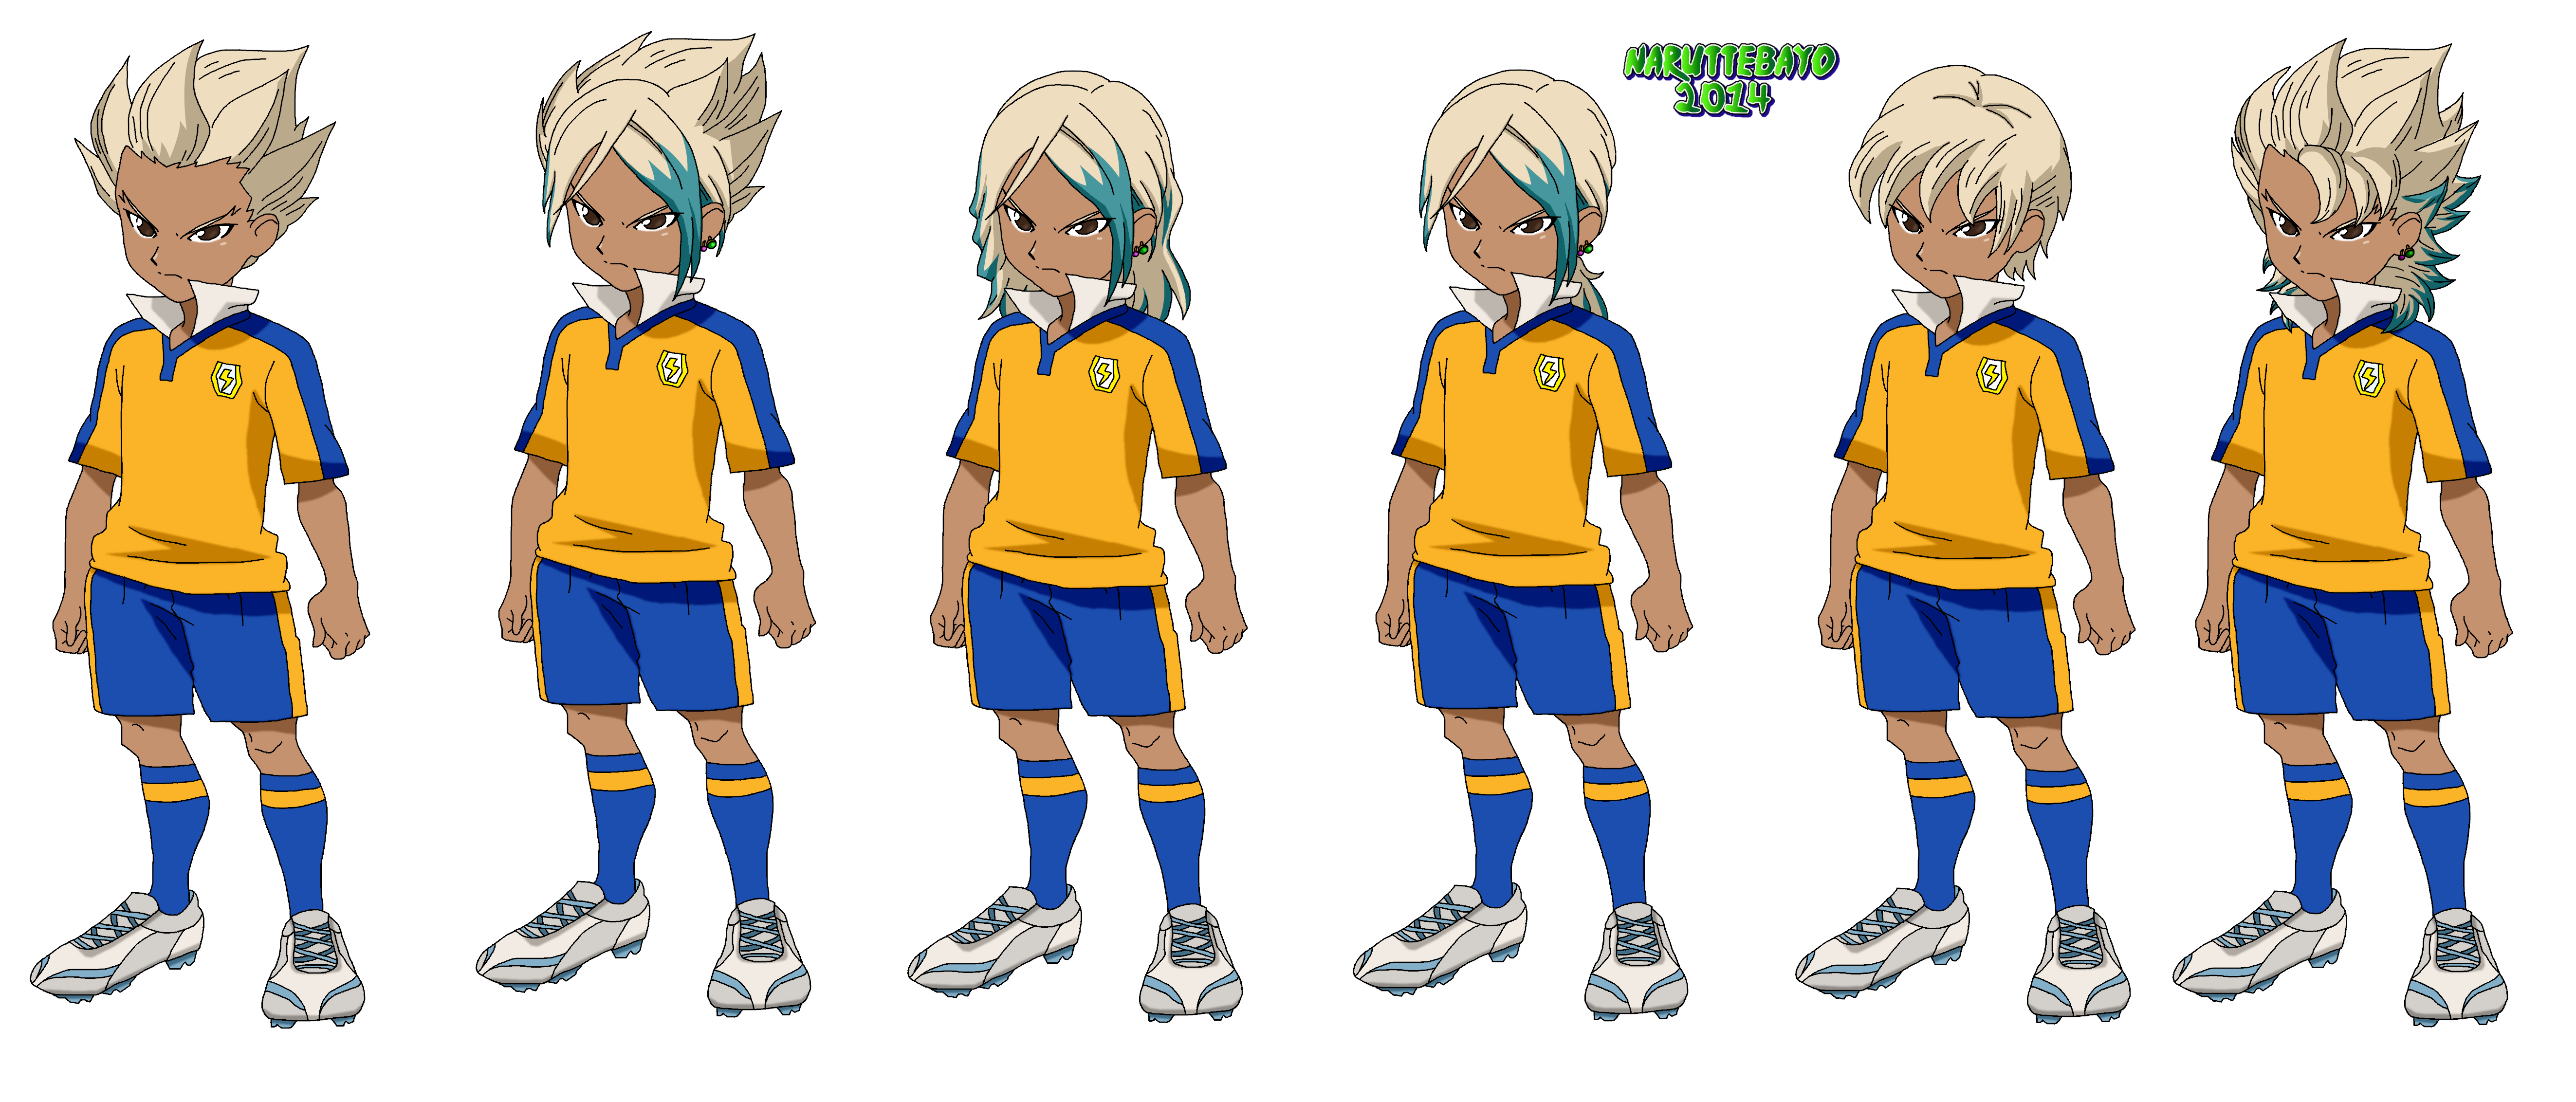 Hair Style Png: Colo Gouenji Hair Style By Naruttebayo67 On DeviantArt